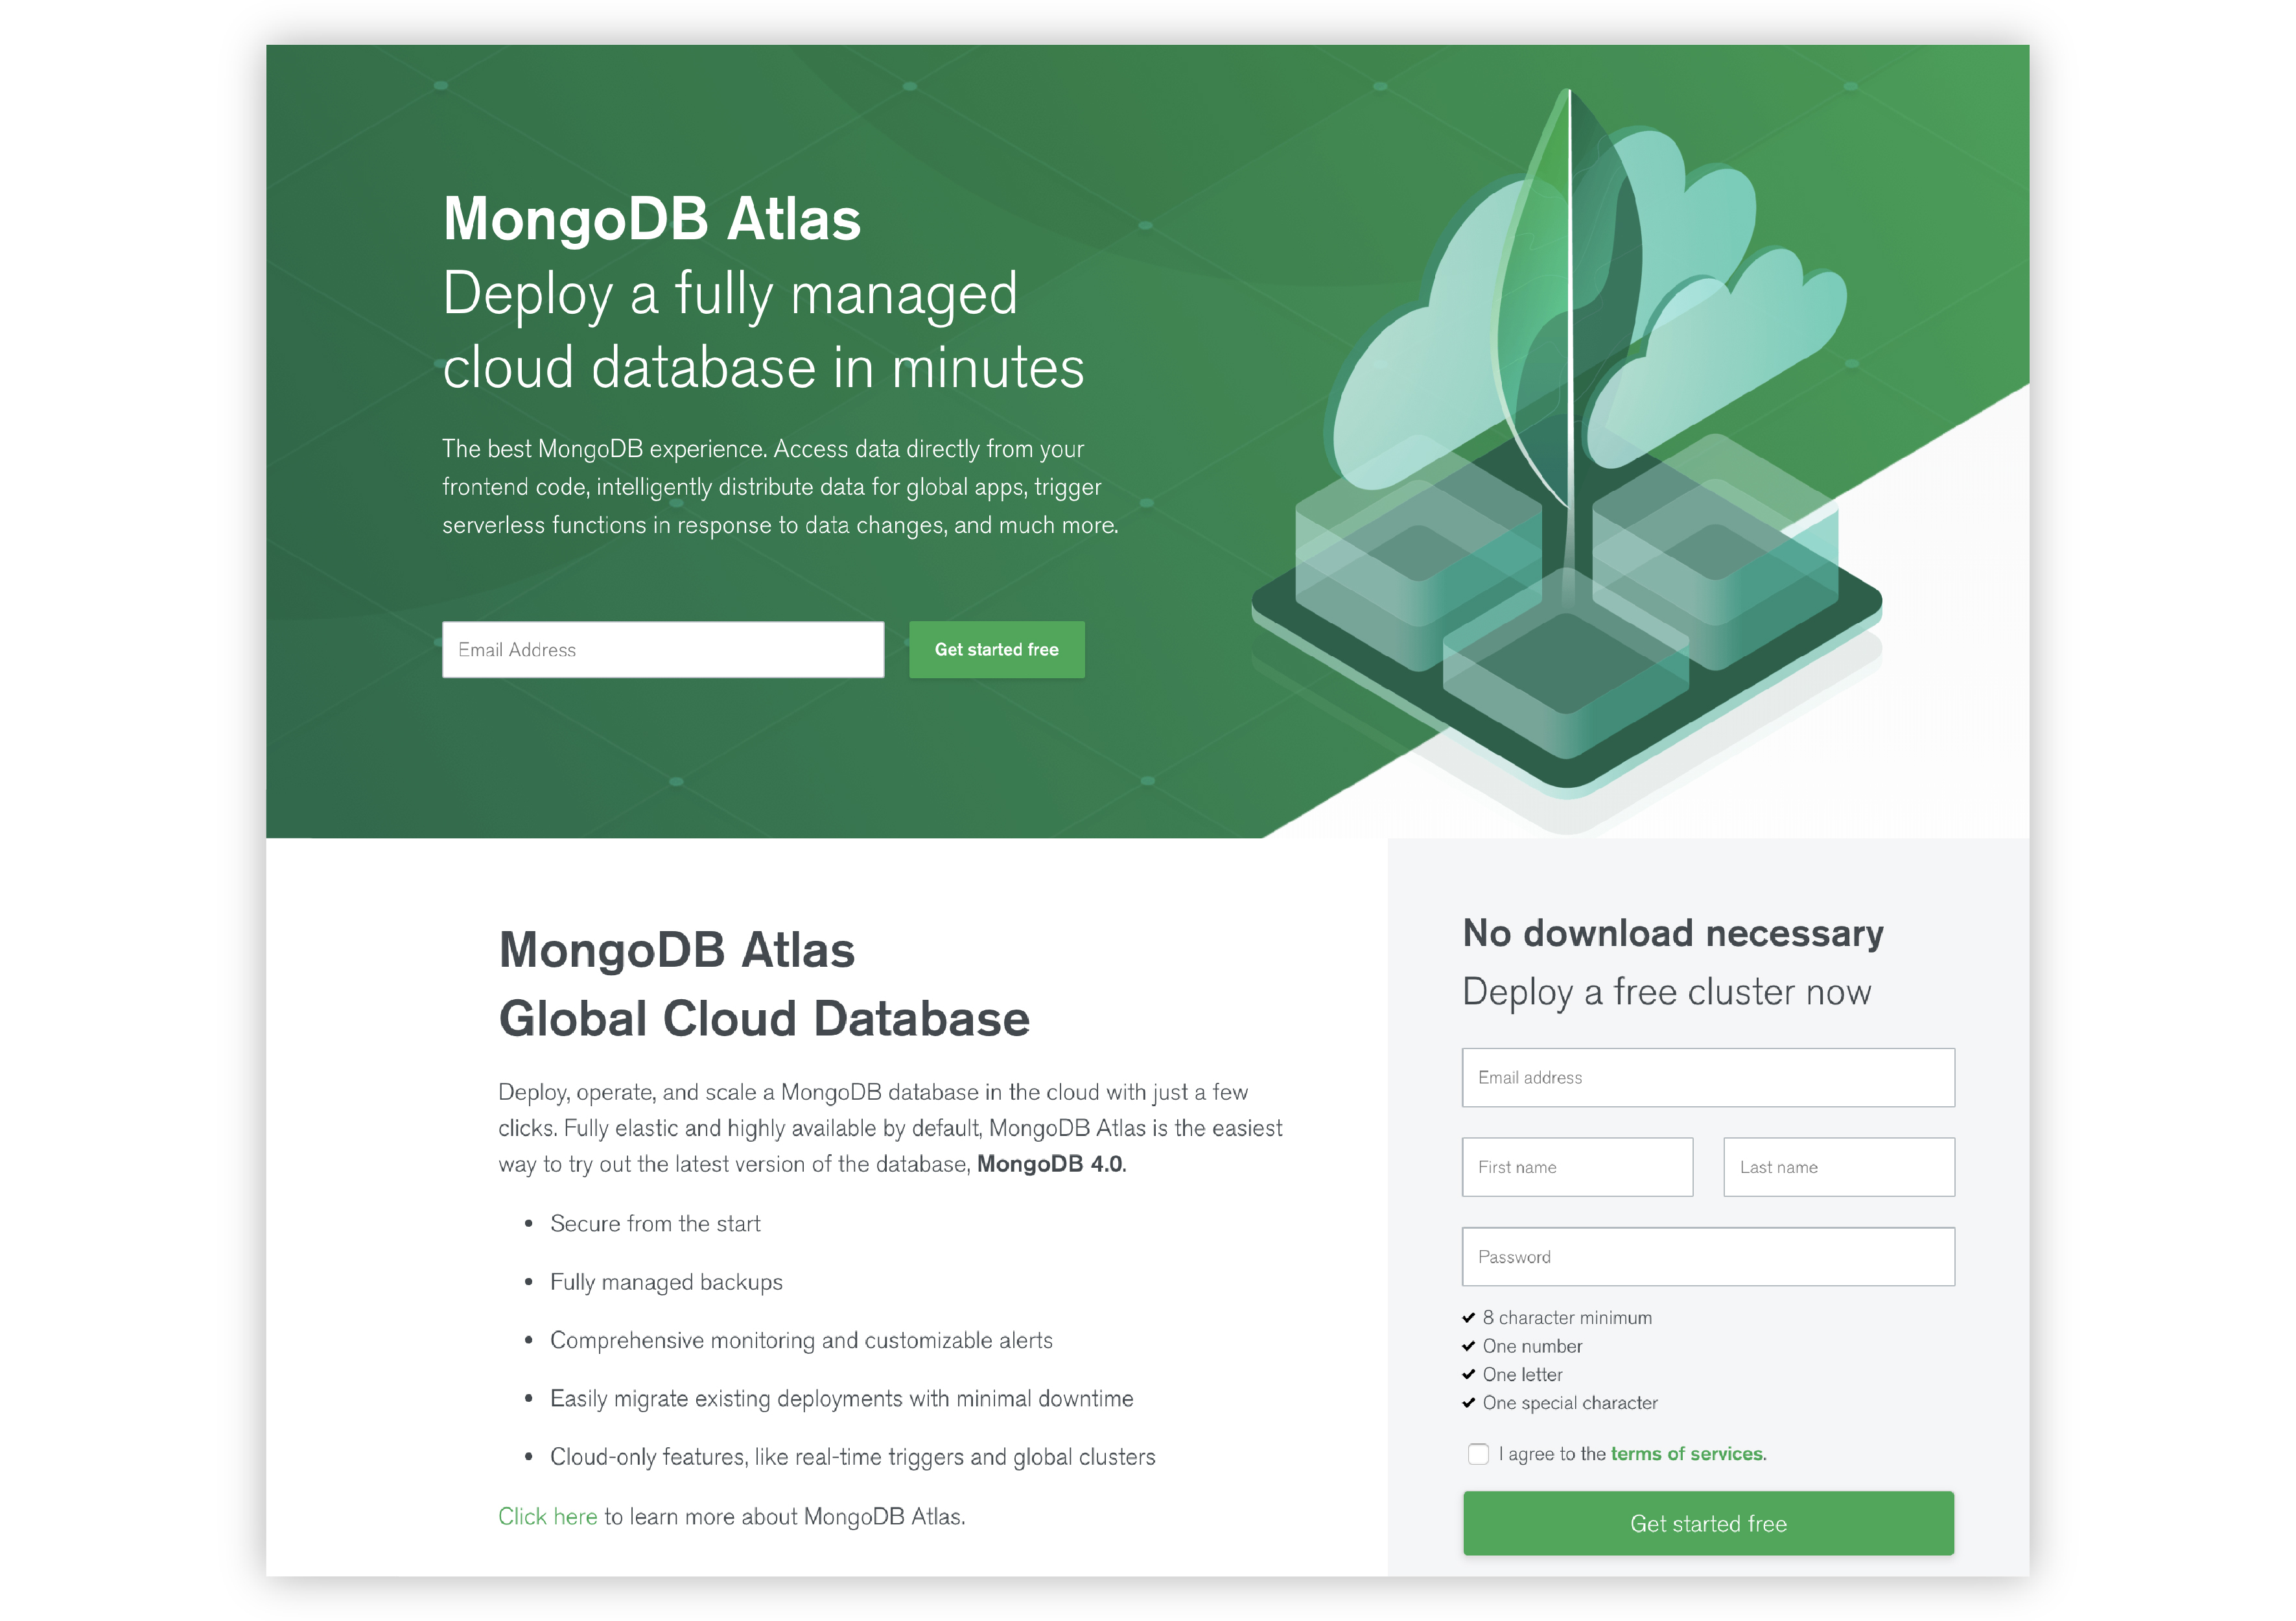 interview questions on MongoDB